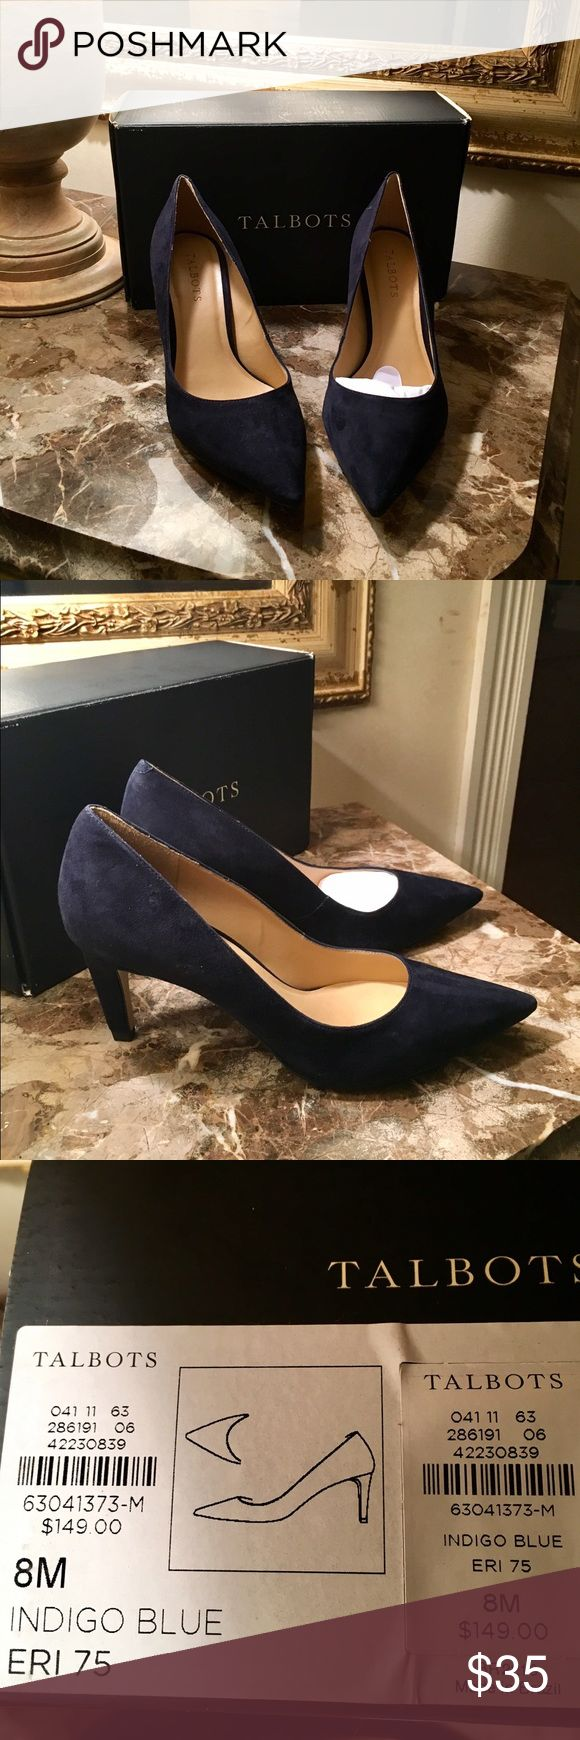 TALBOTS NEW BLUE SUEDE PUMPS! Brand new with box size 8 indigo blue (navy) suede pumps. Great for spring. TALBOTS. RETAILED at $149. Sold out. Great deal! Approximately 3 inch heel. Talbots Shoes Heels